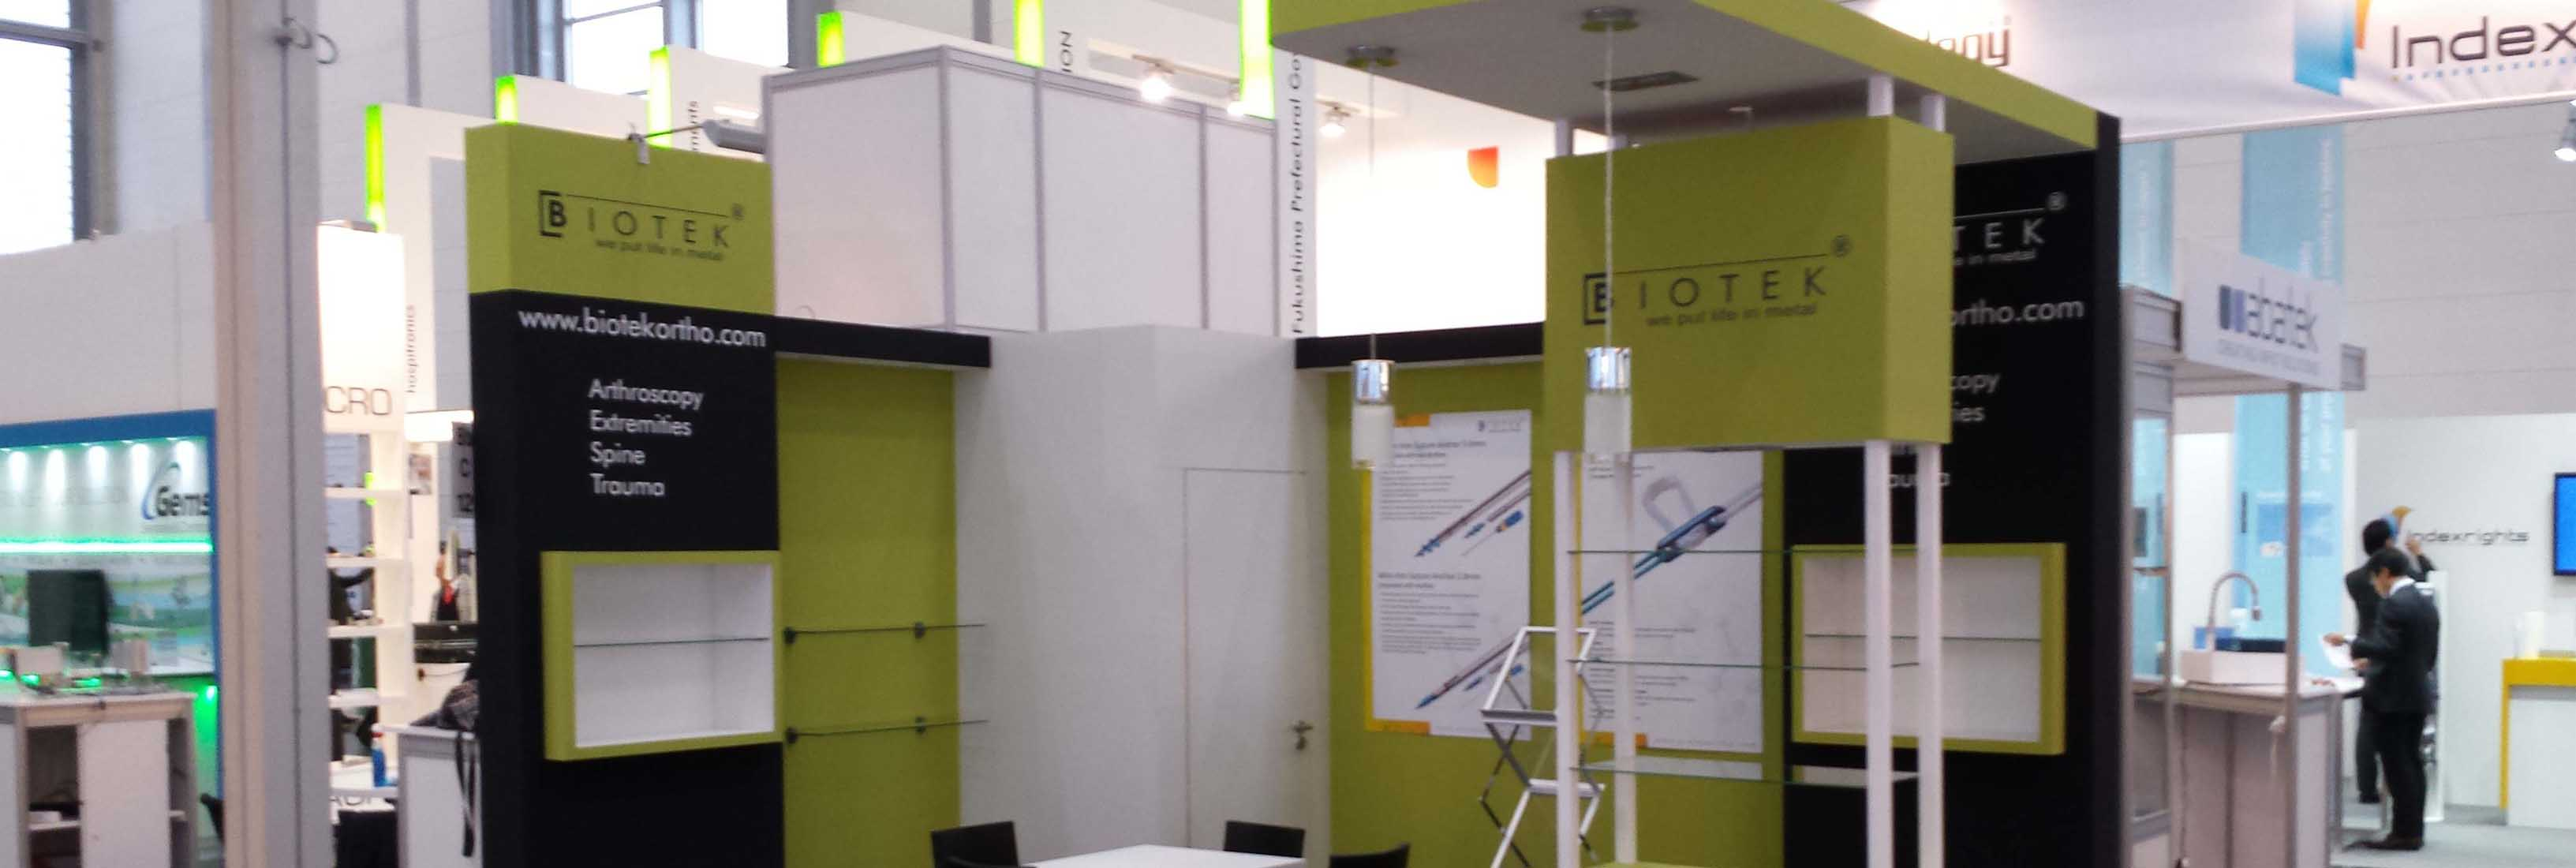 The Medica/Compamed 2014 in Dusseldorf, Germany.